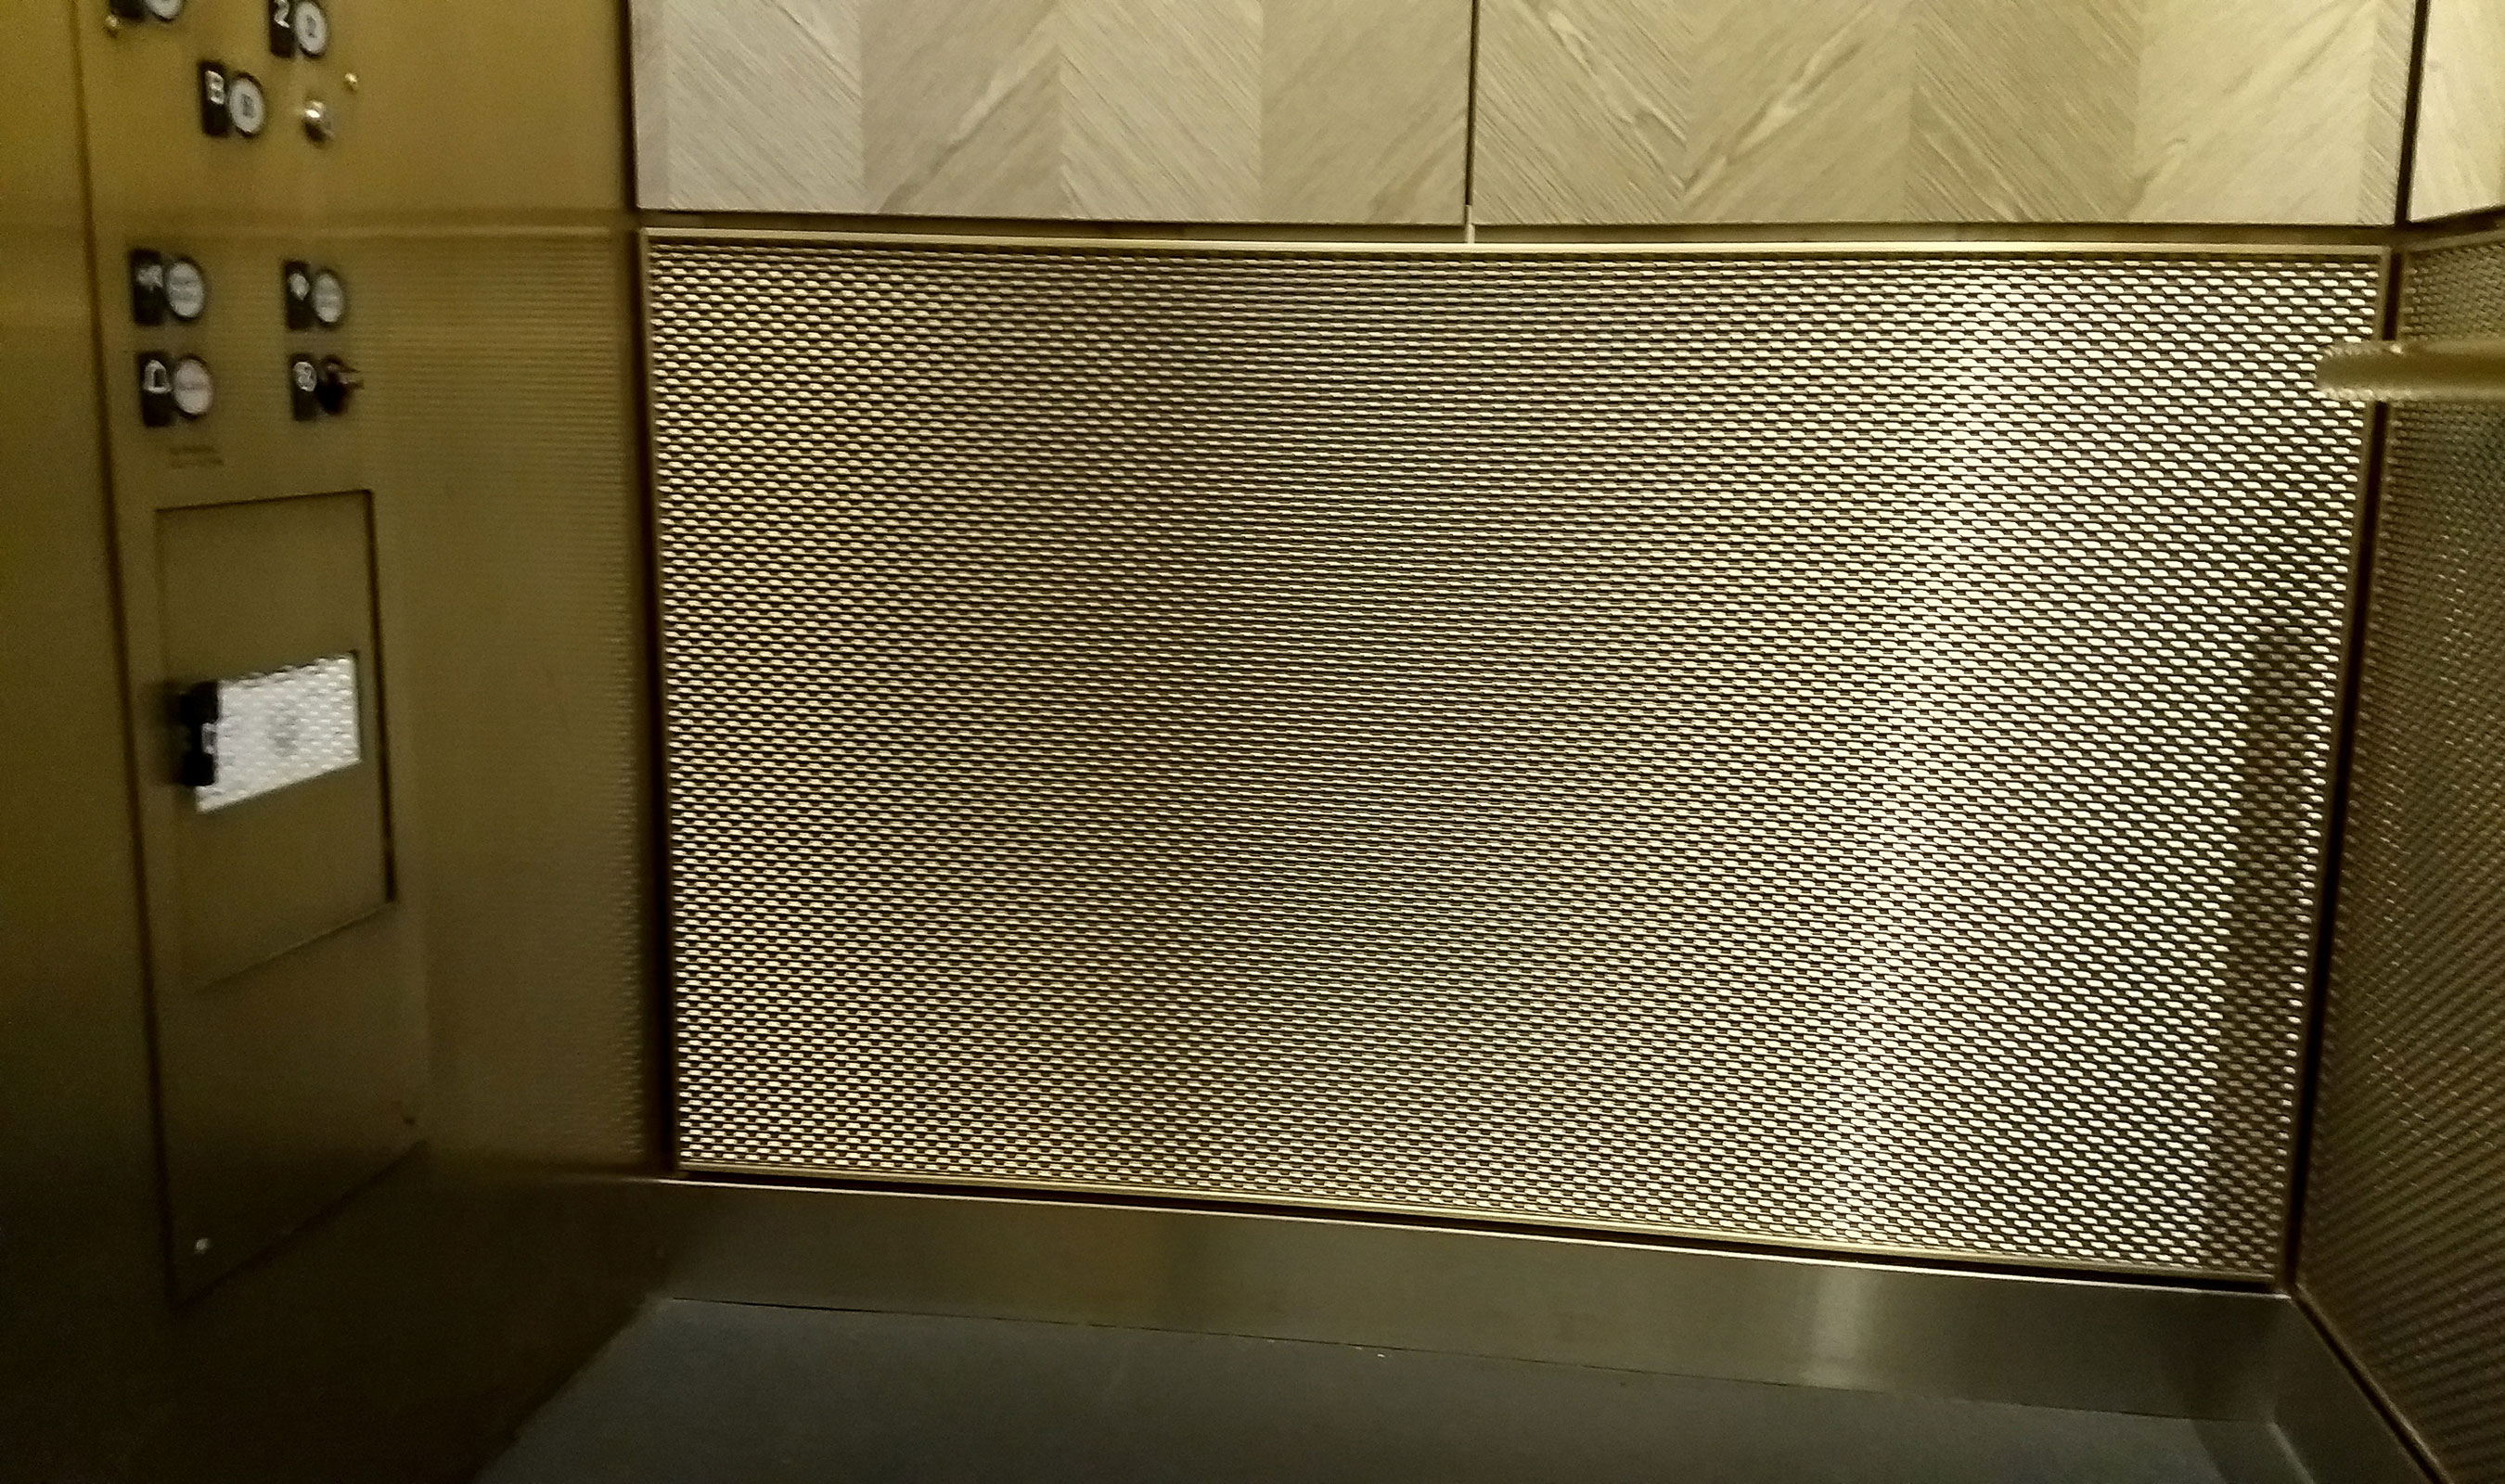 The flats of the DS-1 decorative mesh reflects the light and the bronze of the railing installed in the elevator cab.